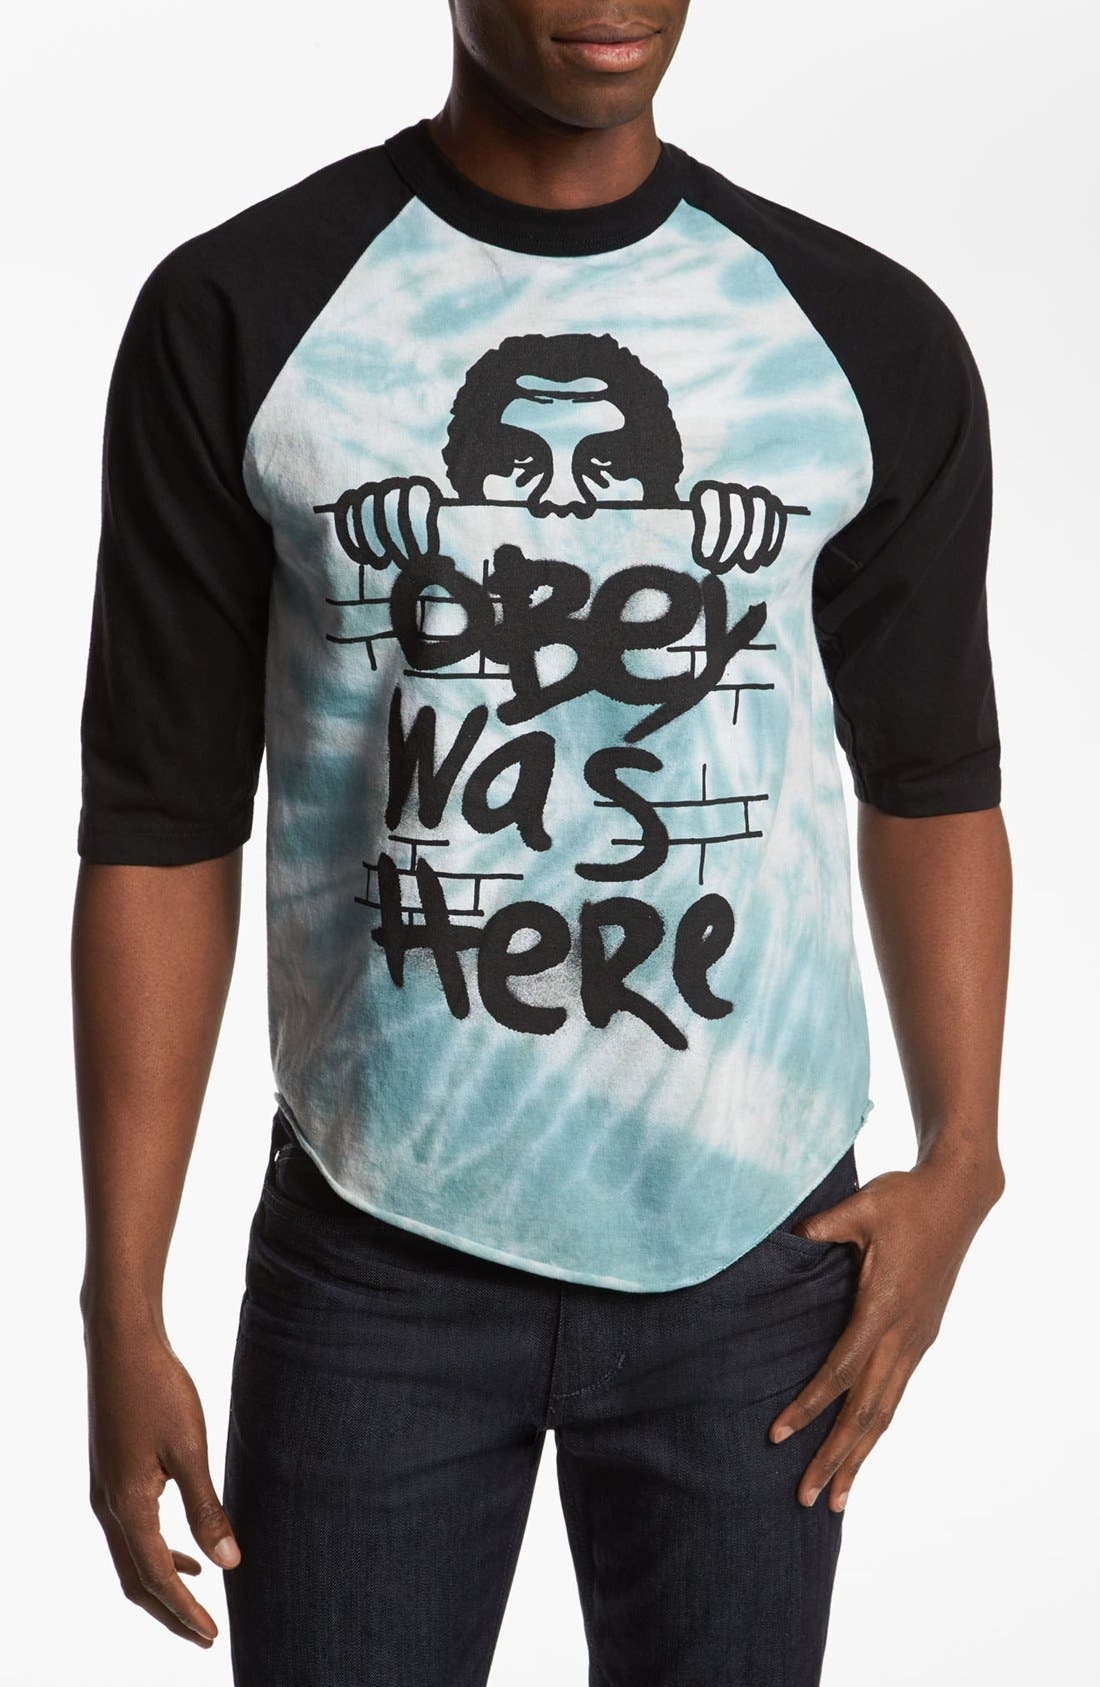 Main Image - Obey 'Obey Was Here' Baseball T-Shirt